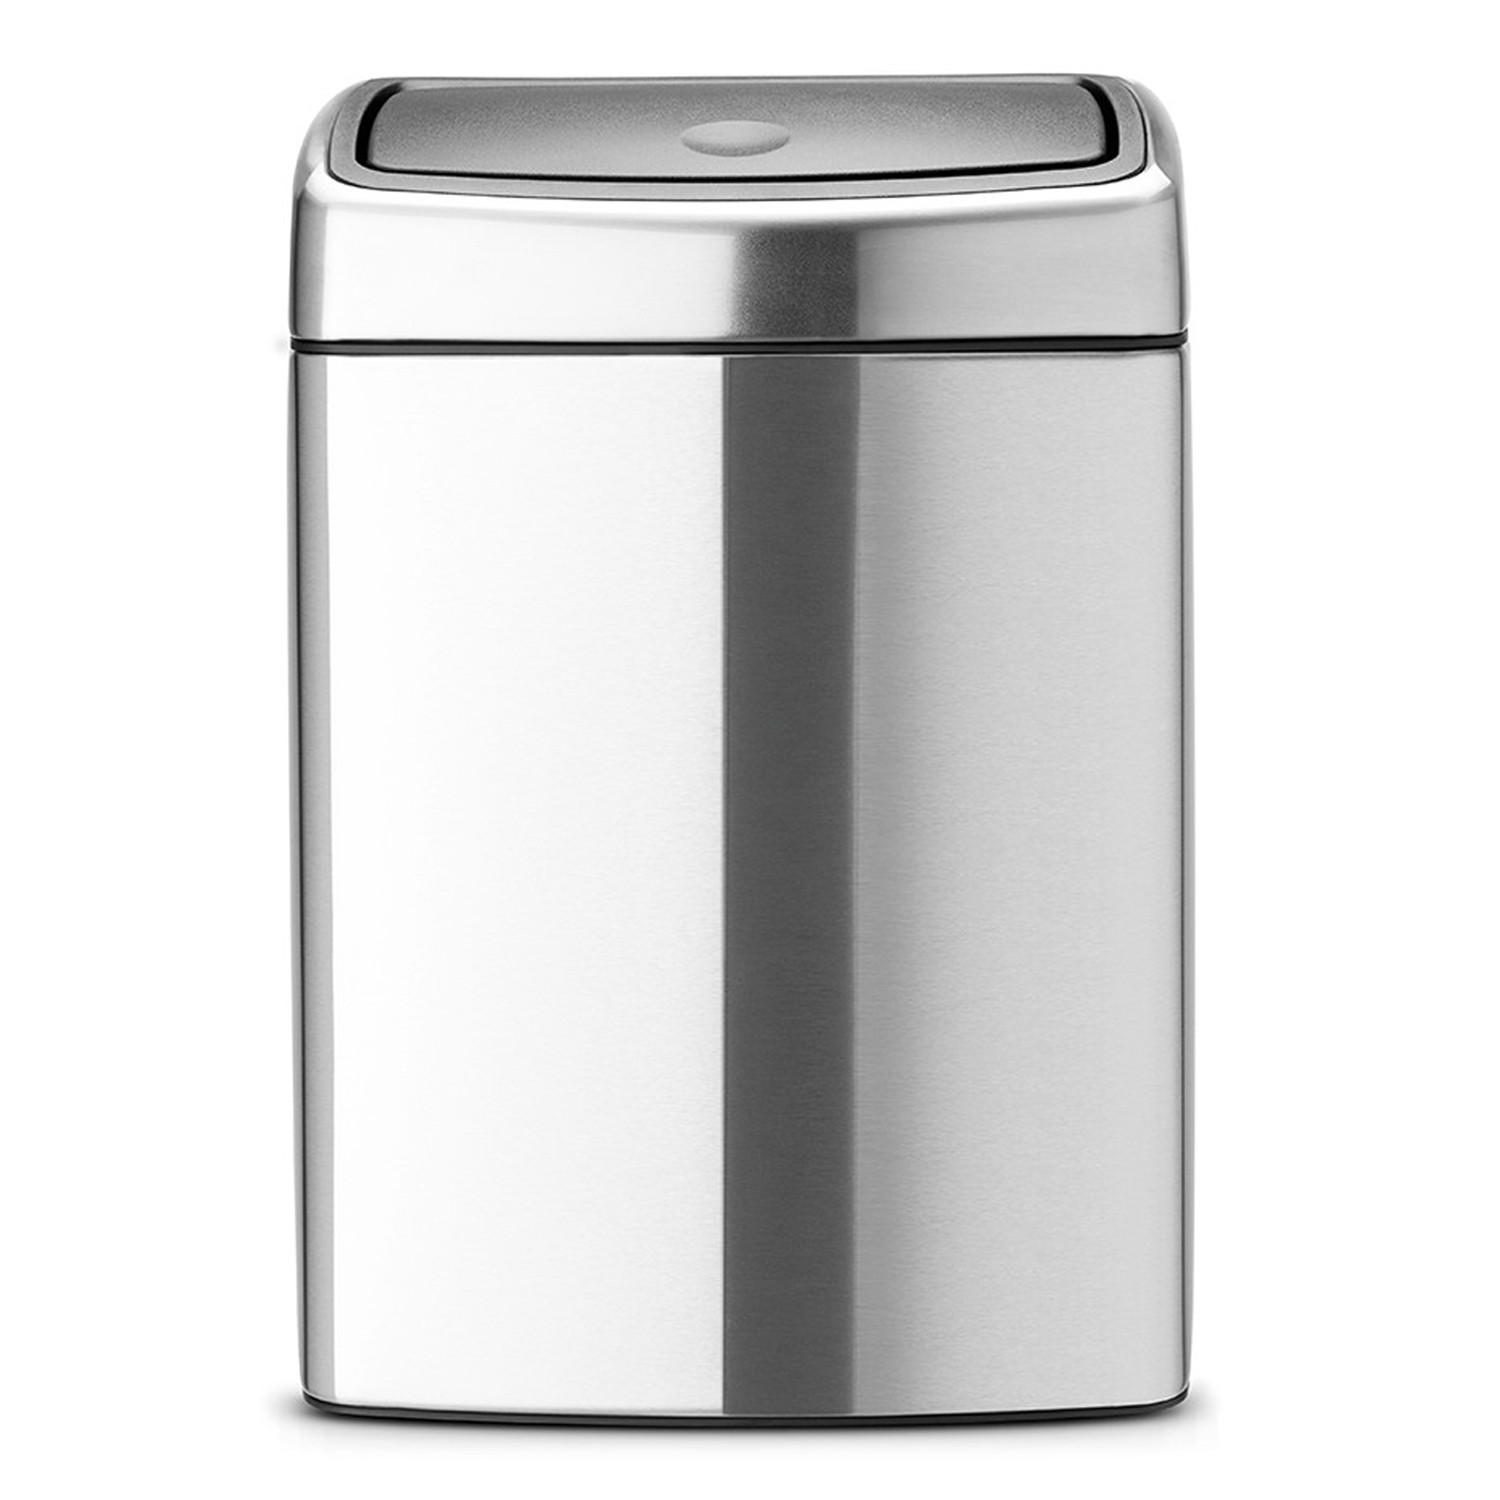 brabantia matt steel 10 litre touch bin leekes. Black Bedroom Furniture Sets. Home Design Ideas